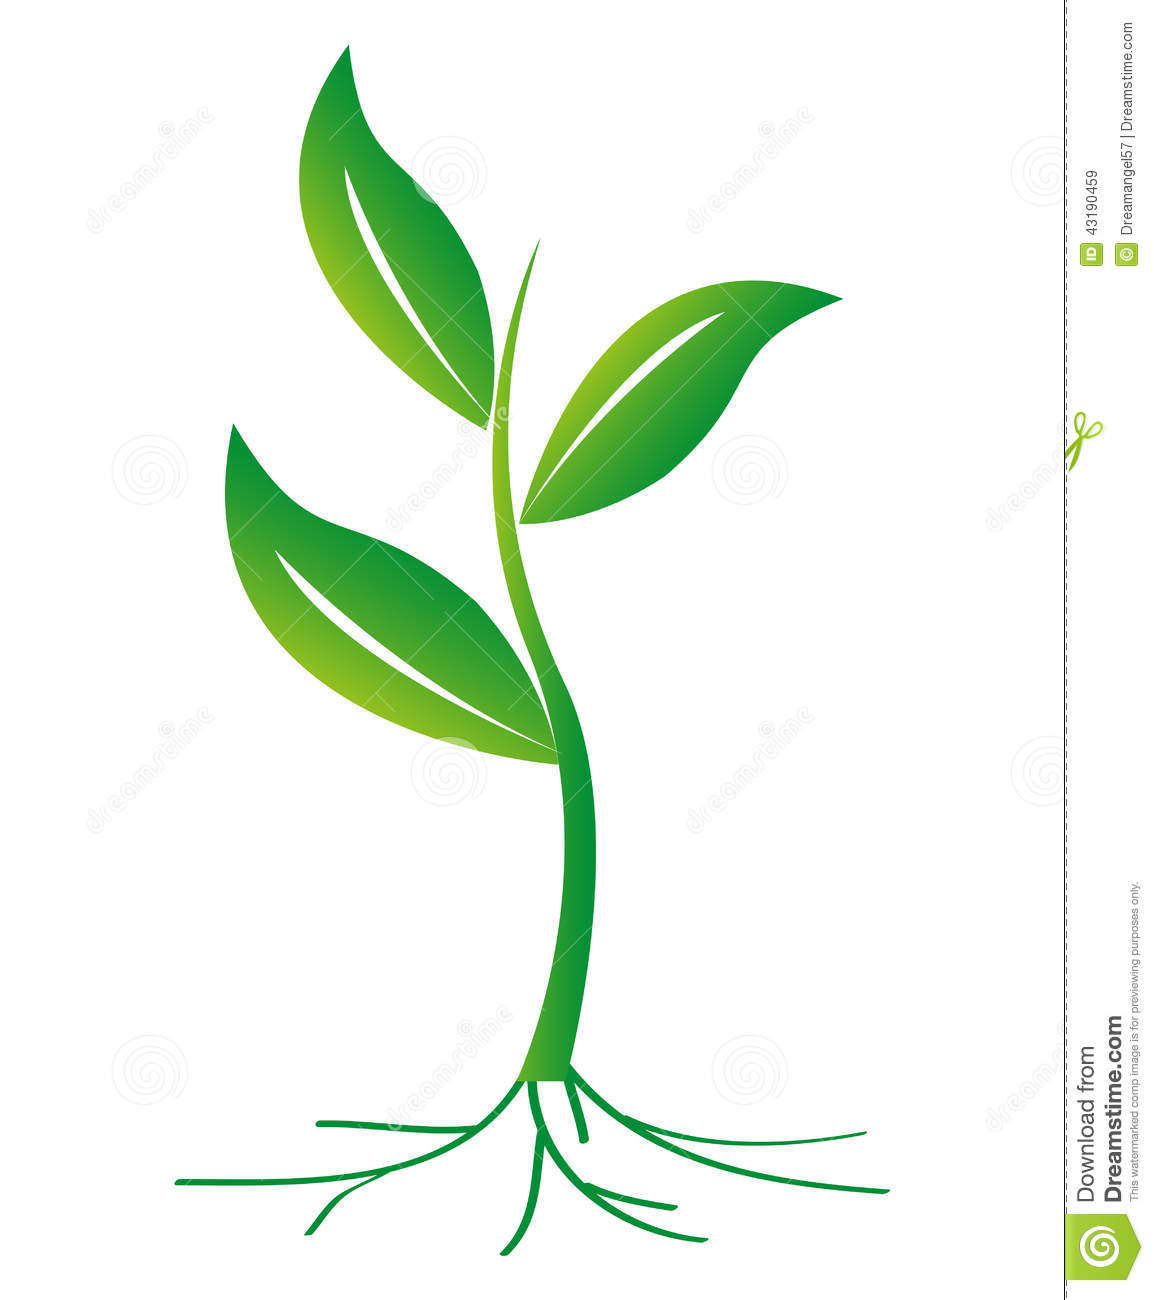 plant diagram clip art harley evo oil pump with roots vector wallpapers gallery